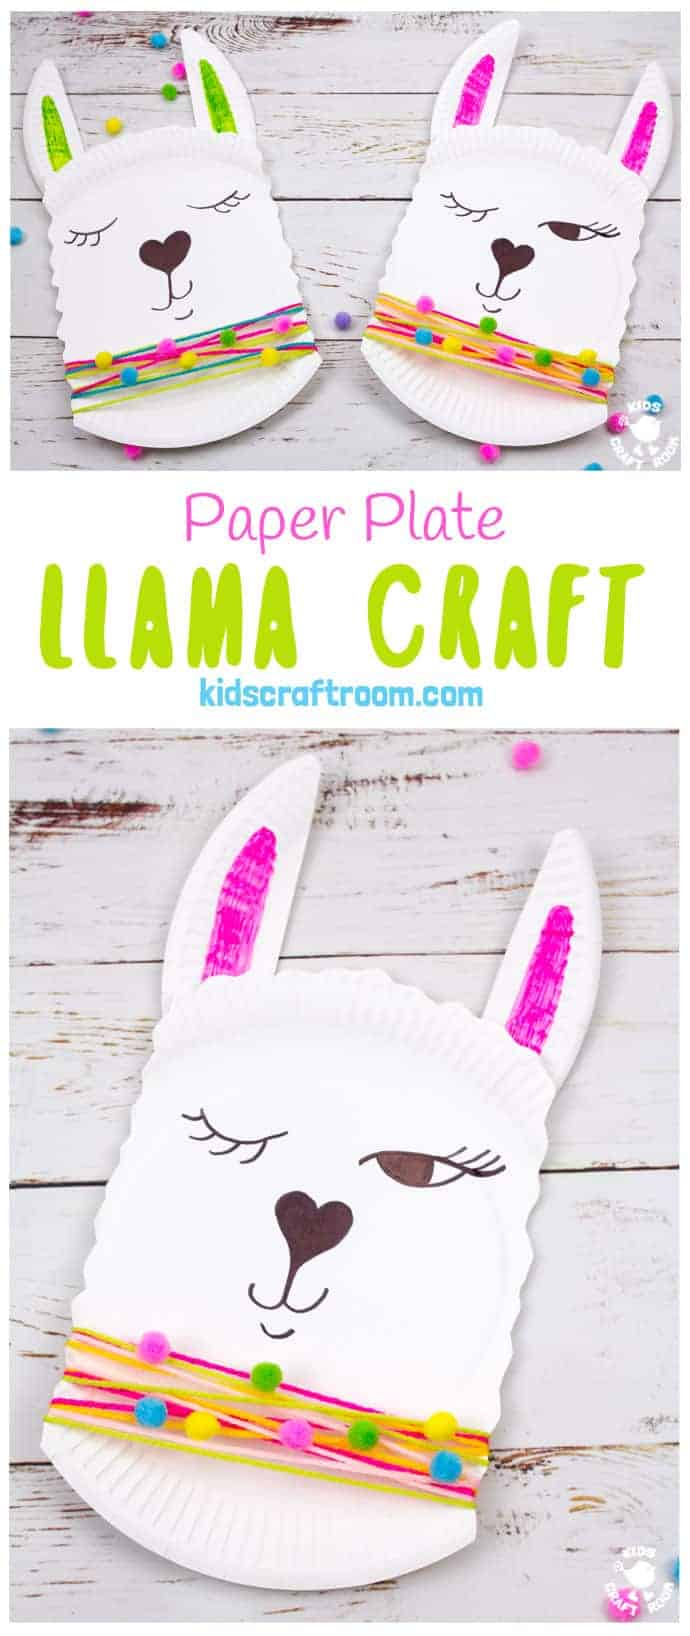 This Paper Plate Llama Craft is so adorable! It's a quick and easy llama craft for kids and a cute quirky idea for a Valentine's Day card too! Add a written llama pun message to make a llama valentine craft that's sure to delight! Llama be your Valentine! #kidscraftroom #kidscrafts #llama #llamacraft #valentine #valentinesday #valentinesdaycrafts #llamas #paperplatecrafts